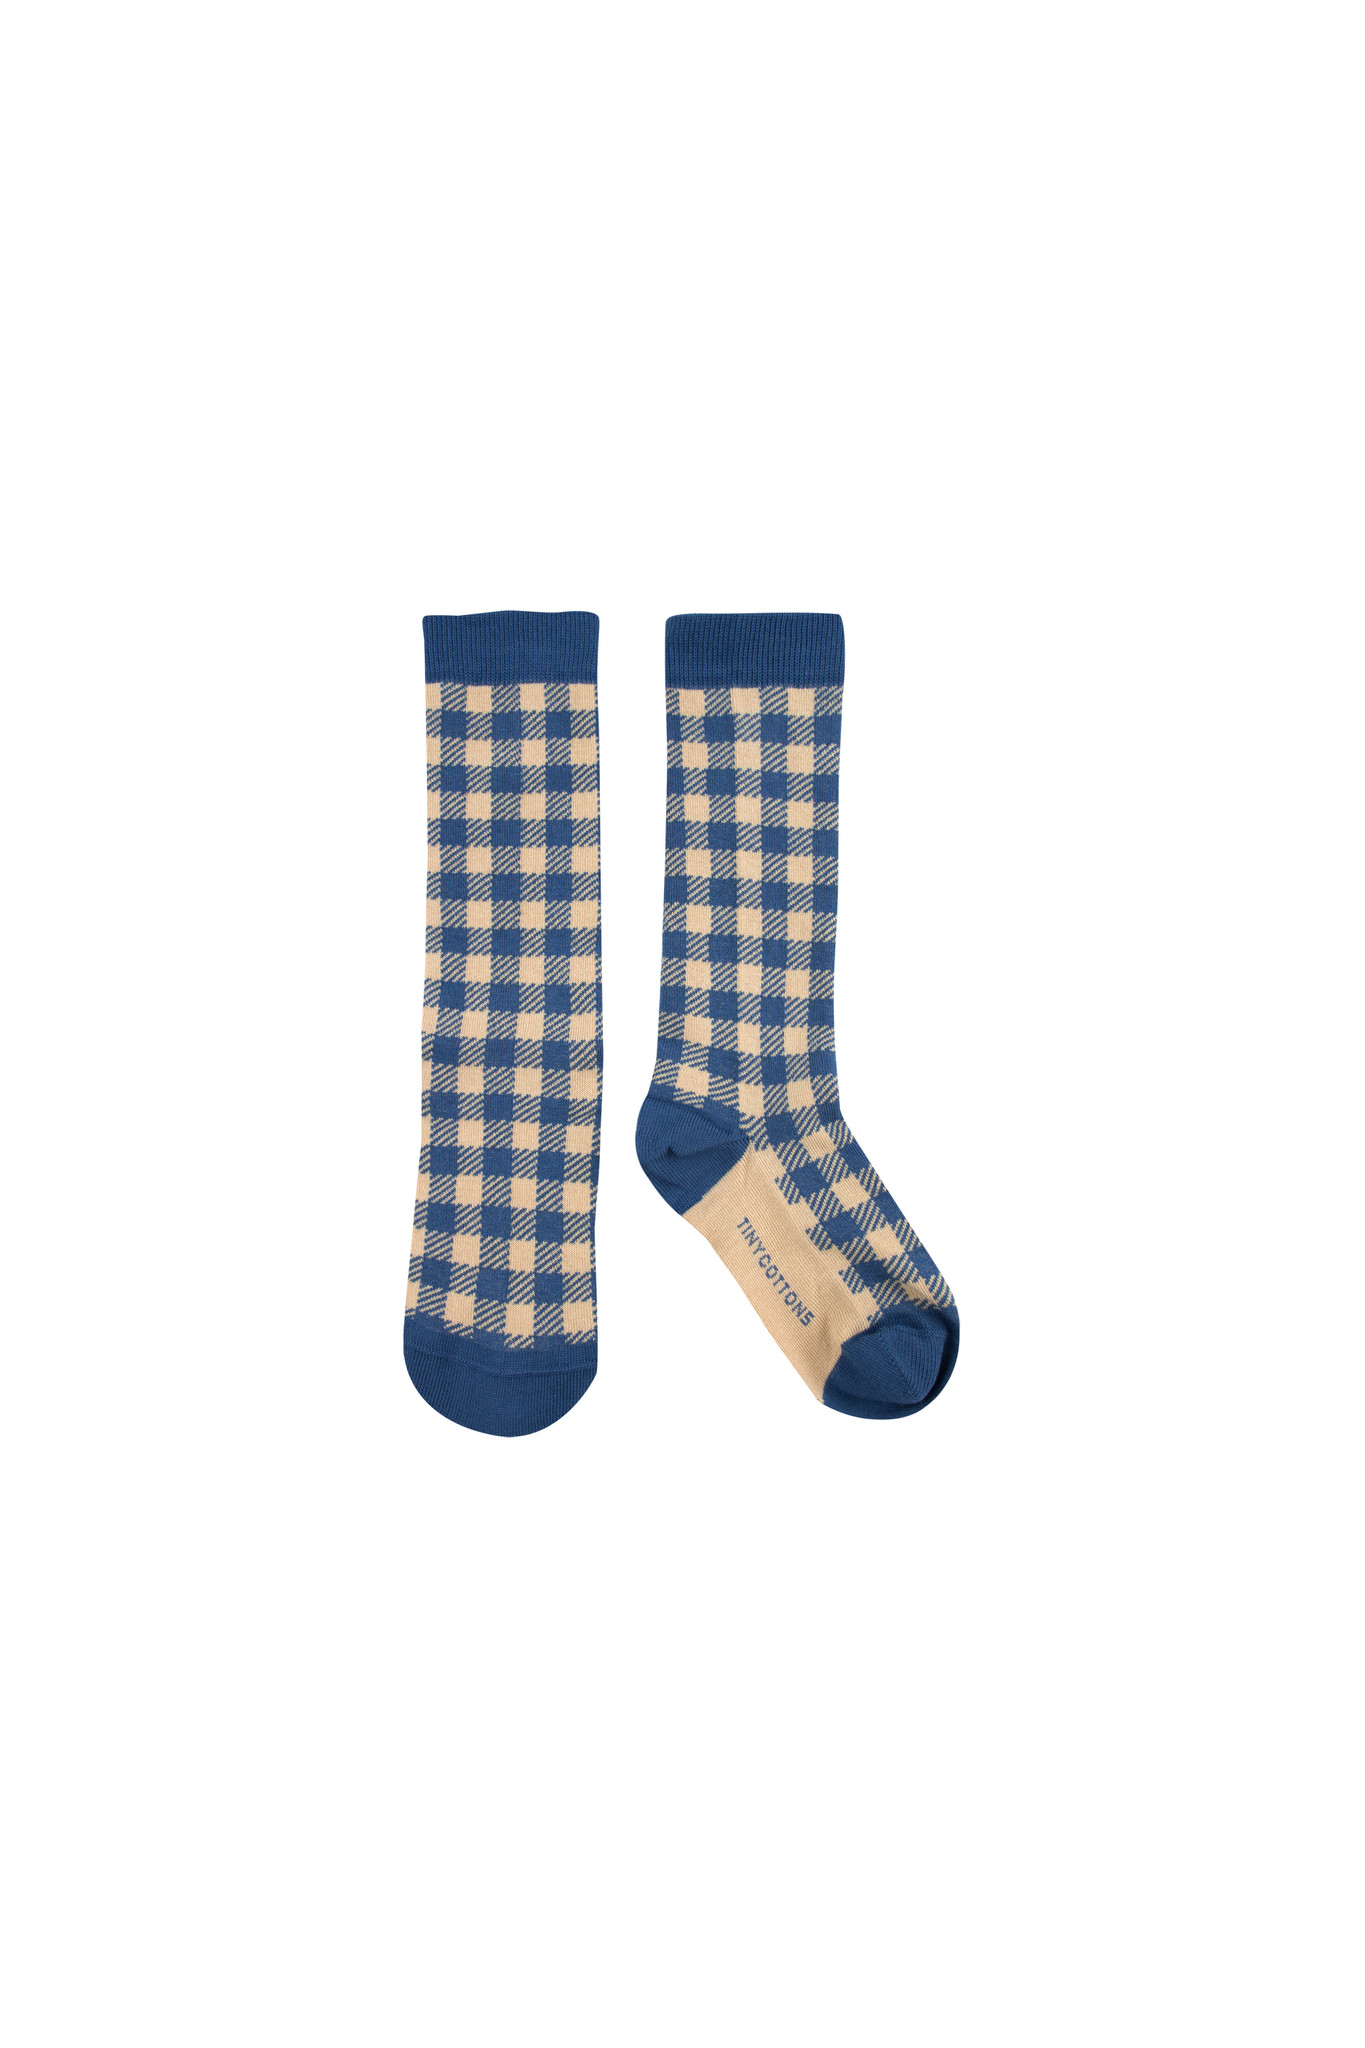 VICHY HIGH SOCKS - Summer Navy / Cappuccino-1